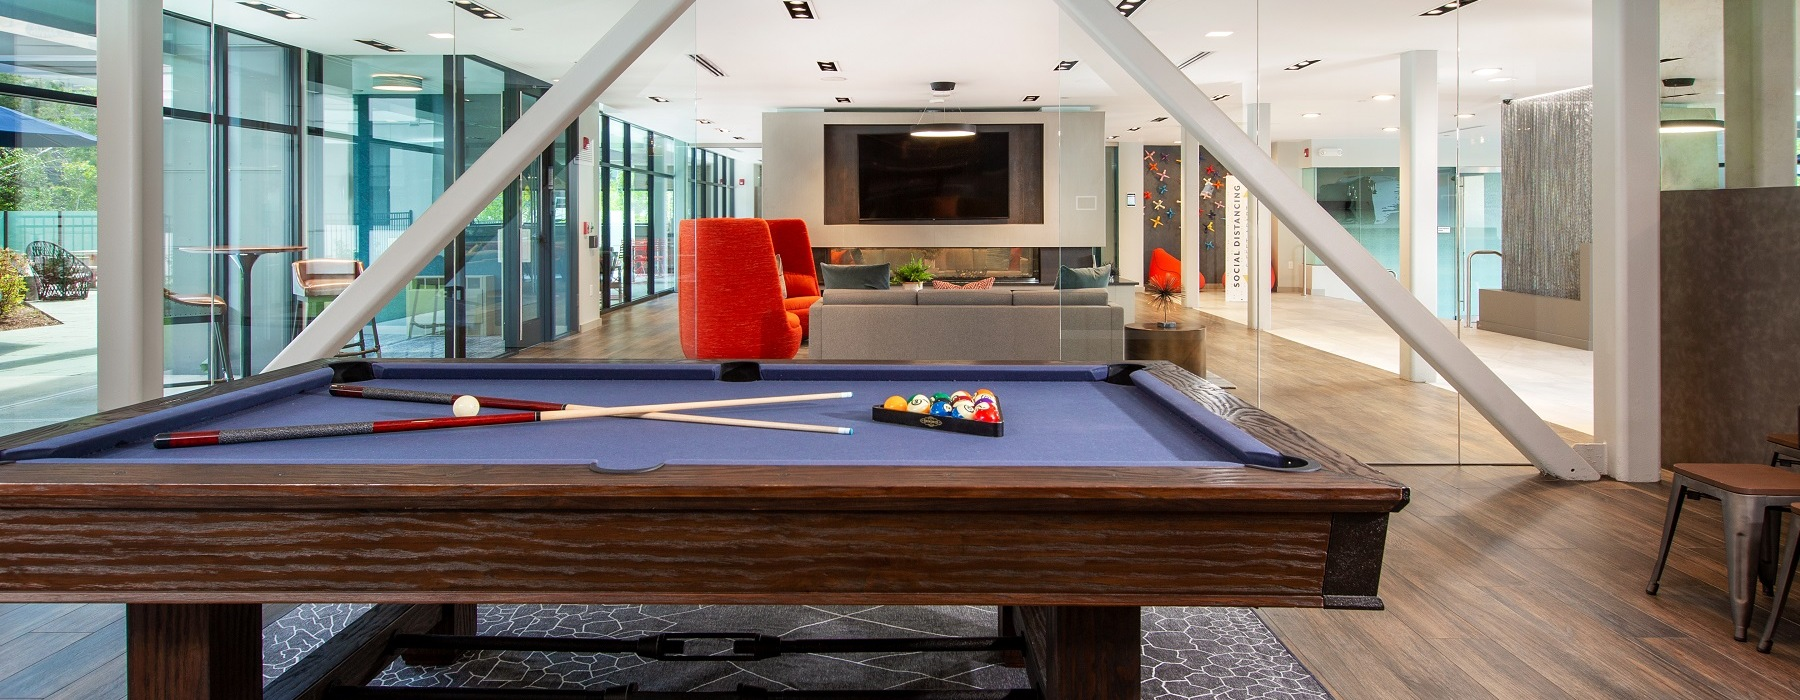 game room with pool table, lighting, flat screen TV and seating. View to outdoor seating area.